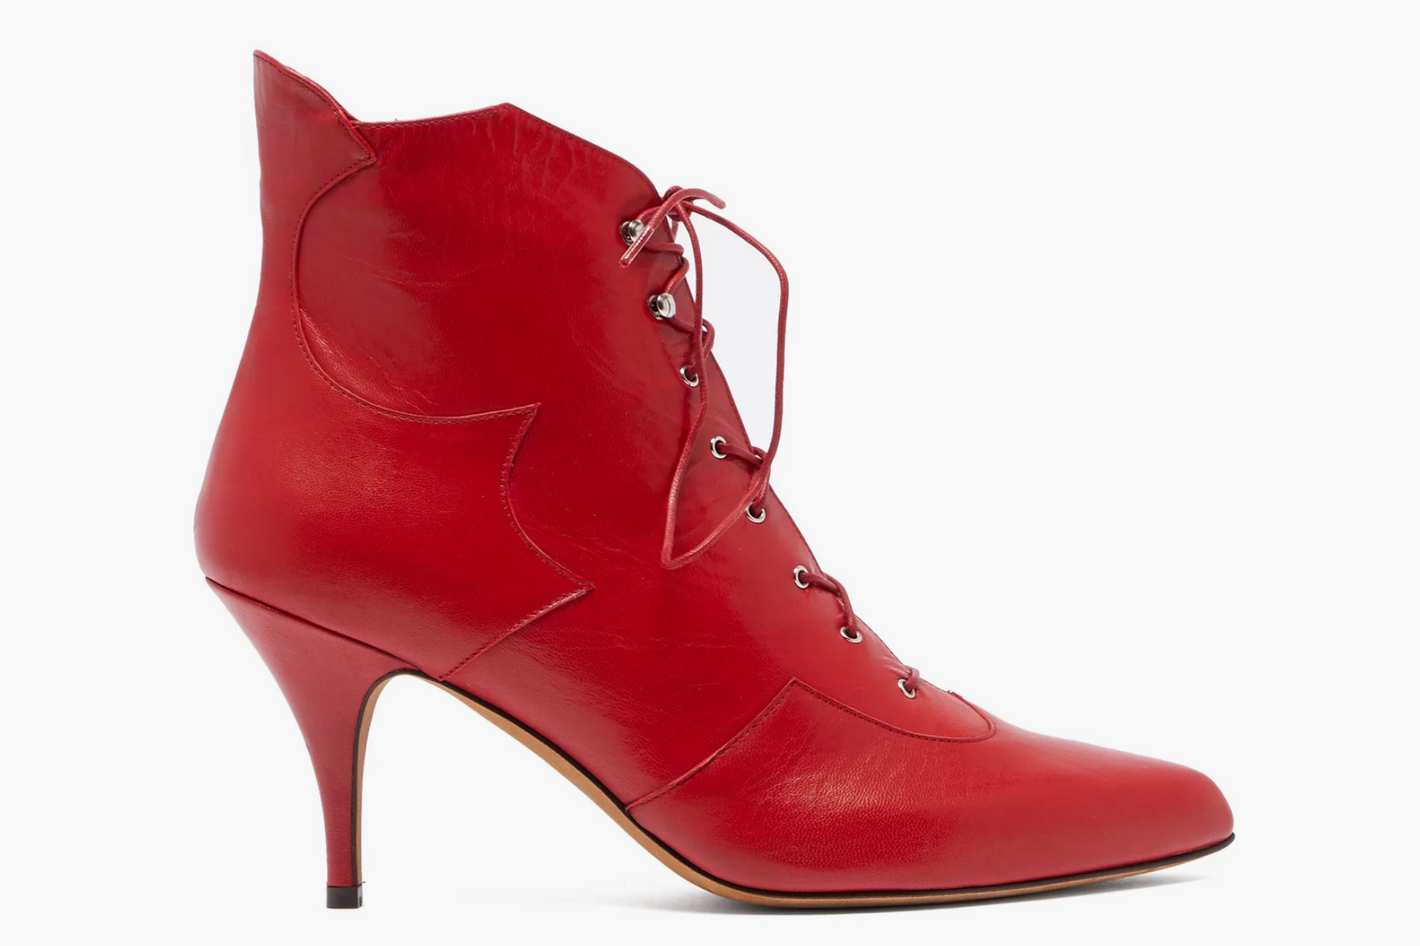 Tabitha Simmons Zora Leather Lace-up Boots